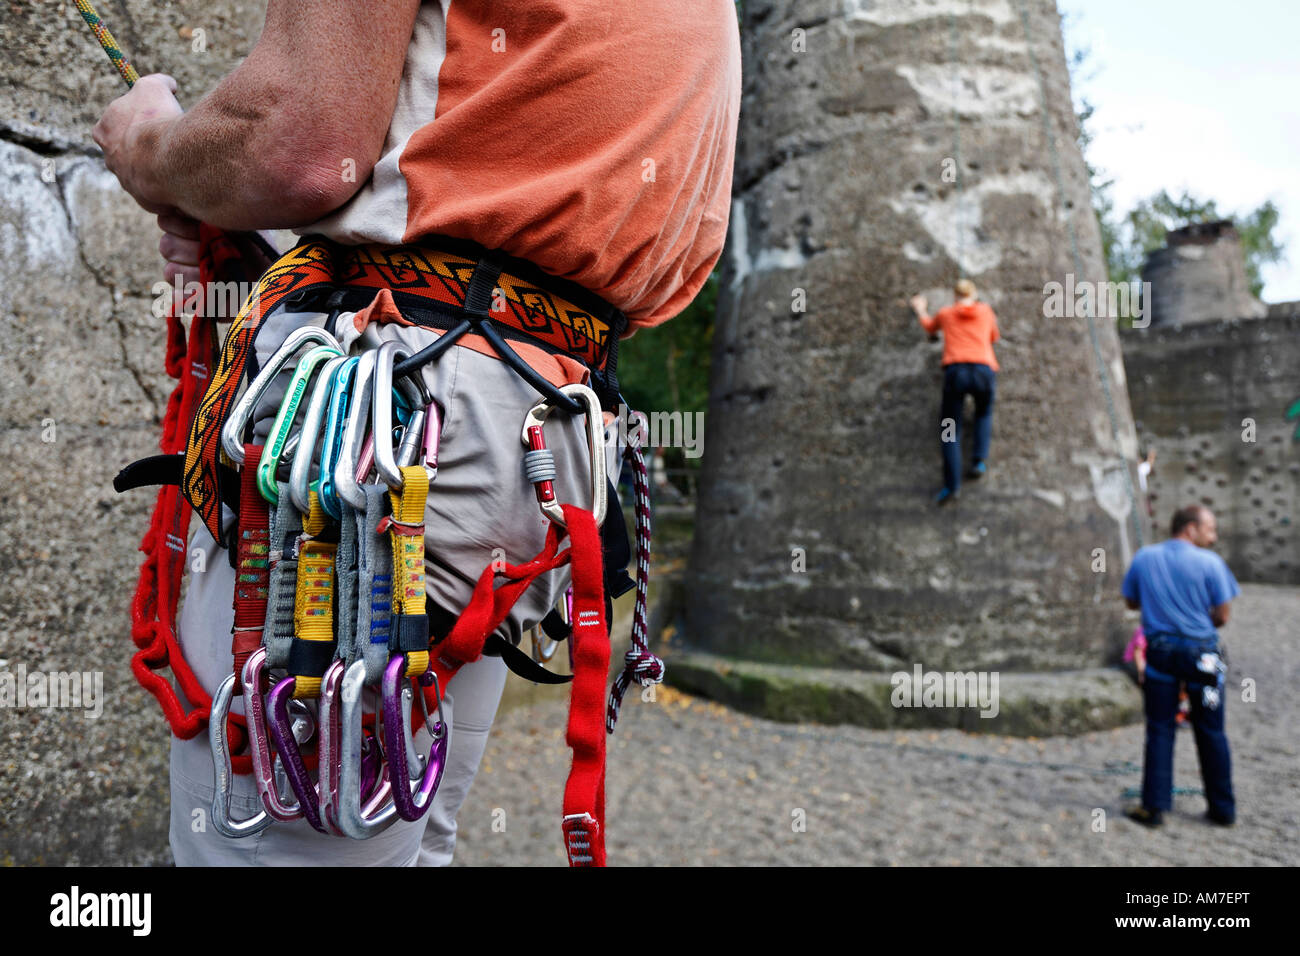 Mountaineer with colourful carbine belt, climbing garden of the former steelworks of Thyssen at Meiderich, landscape - Stock Image